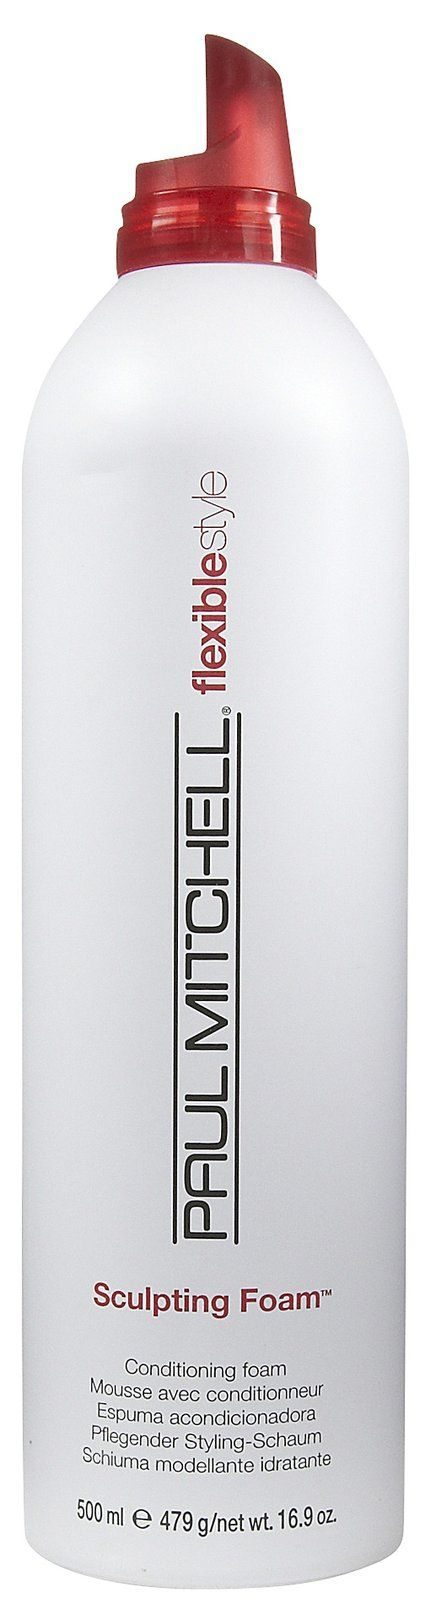 Paul Mitchell Sculpting Foam - The BEST Mouse out there! I've tried it all. This is the only one that does not make my curls feel crunchy! Since it's a conditioning foam, it makes my shapes my curls into loose, soft, and shiny waves.